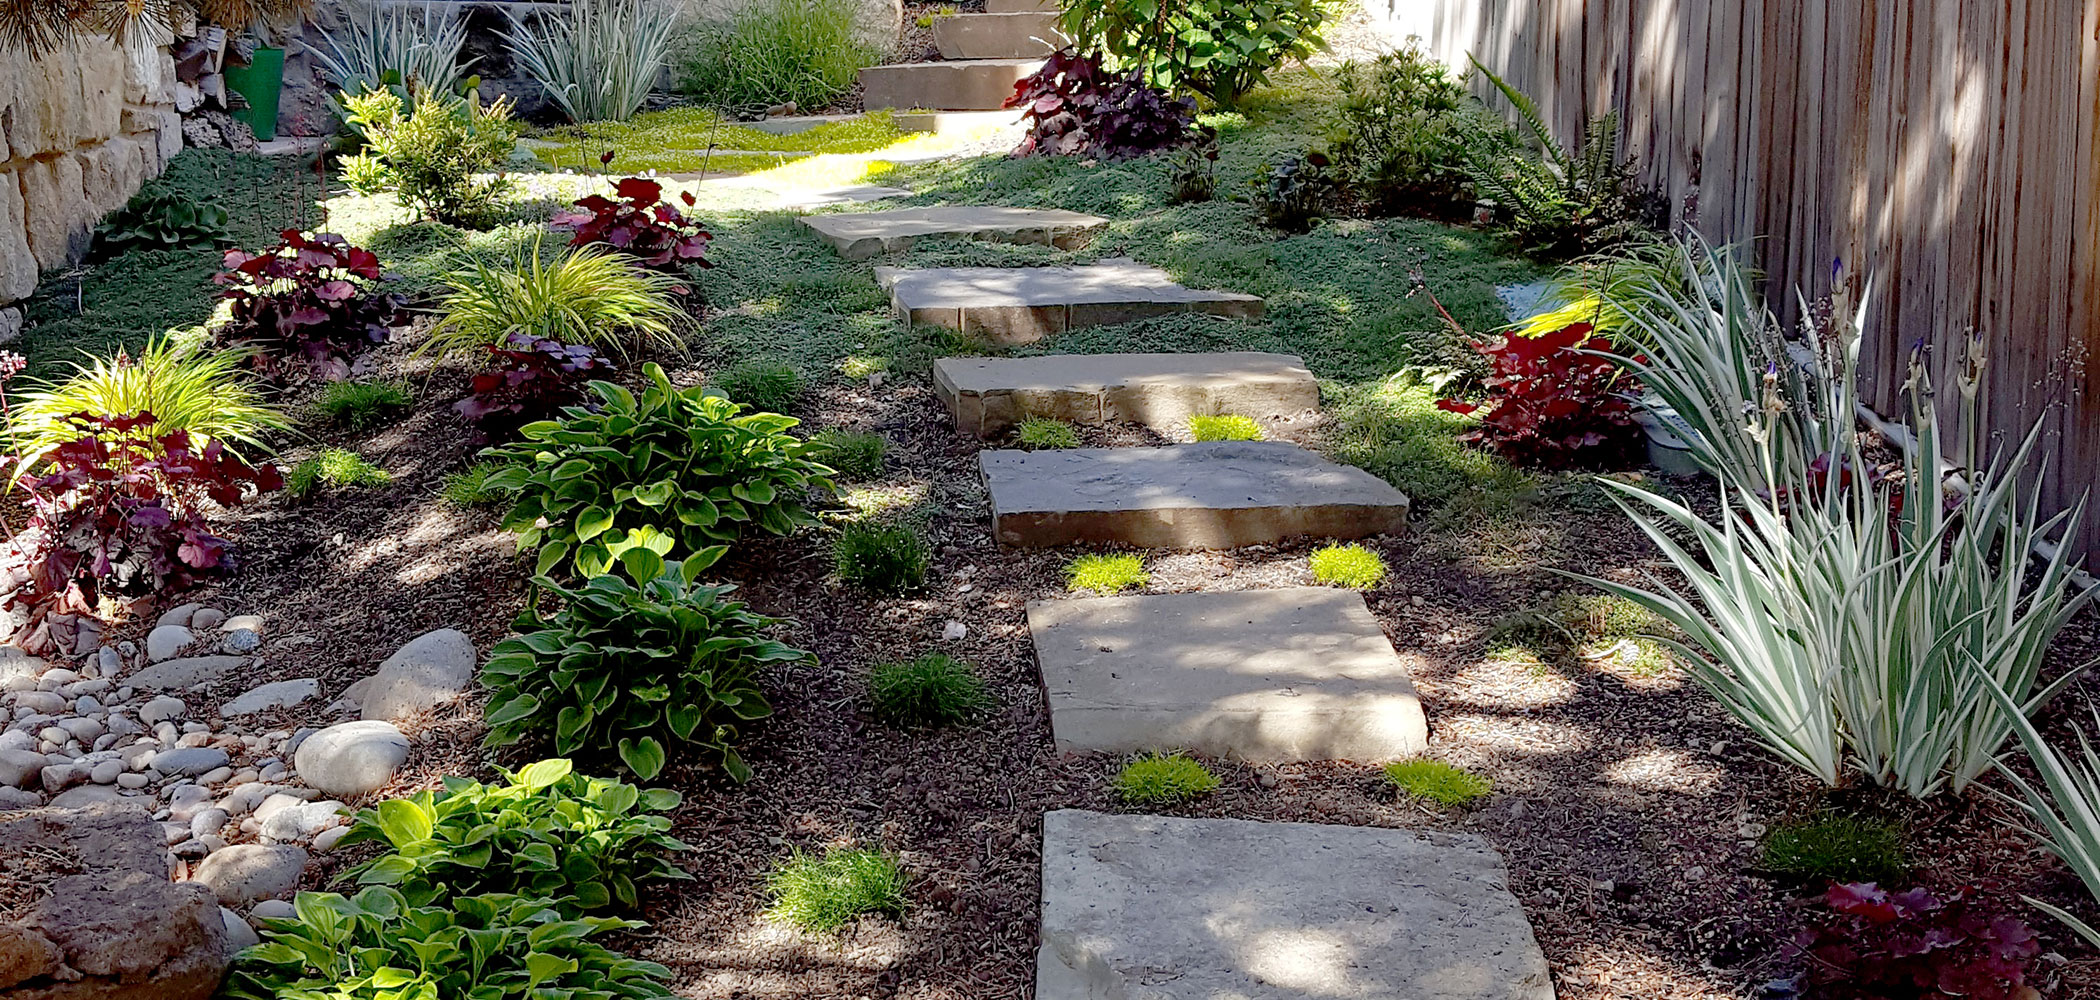 Custom garden and paver walkway installation in Boise, Idaho.